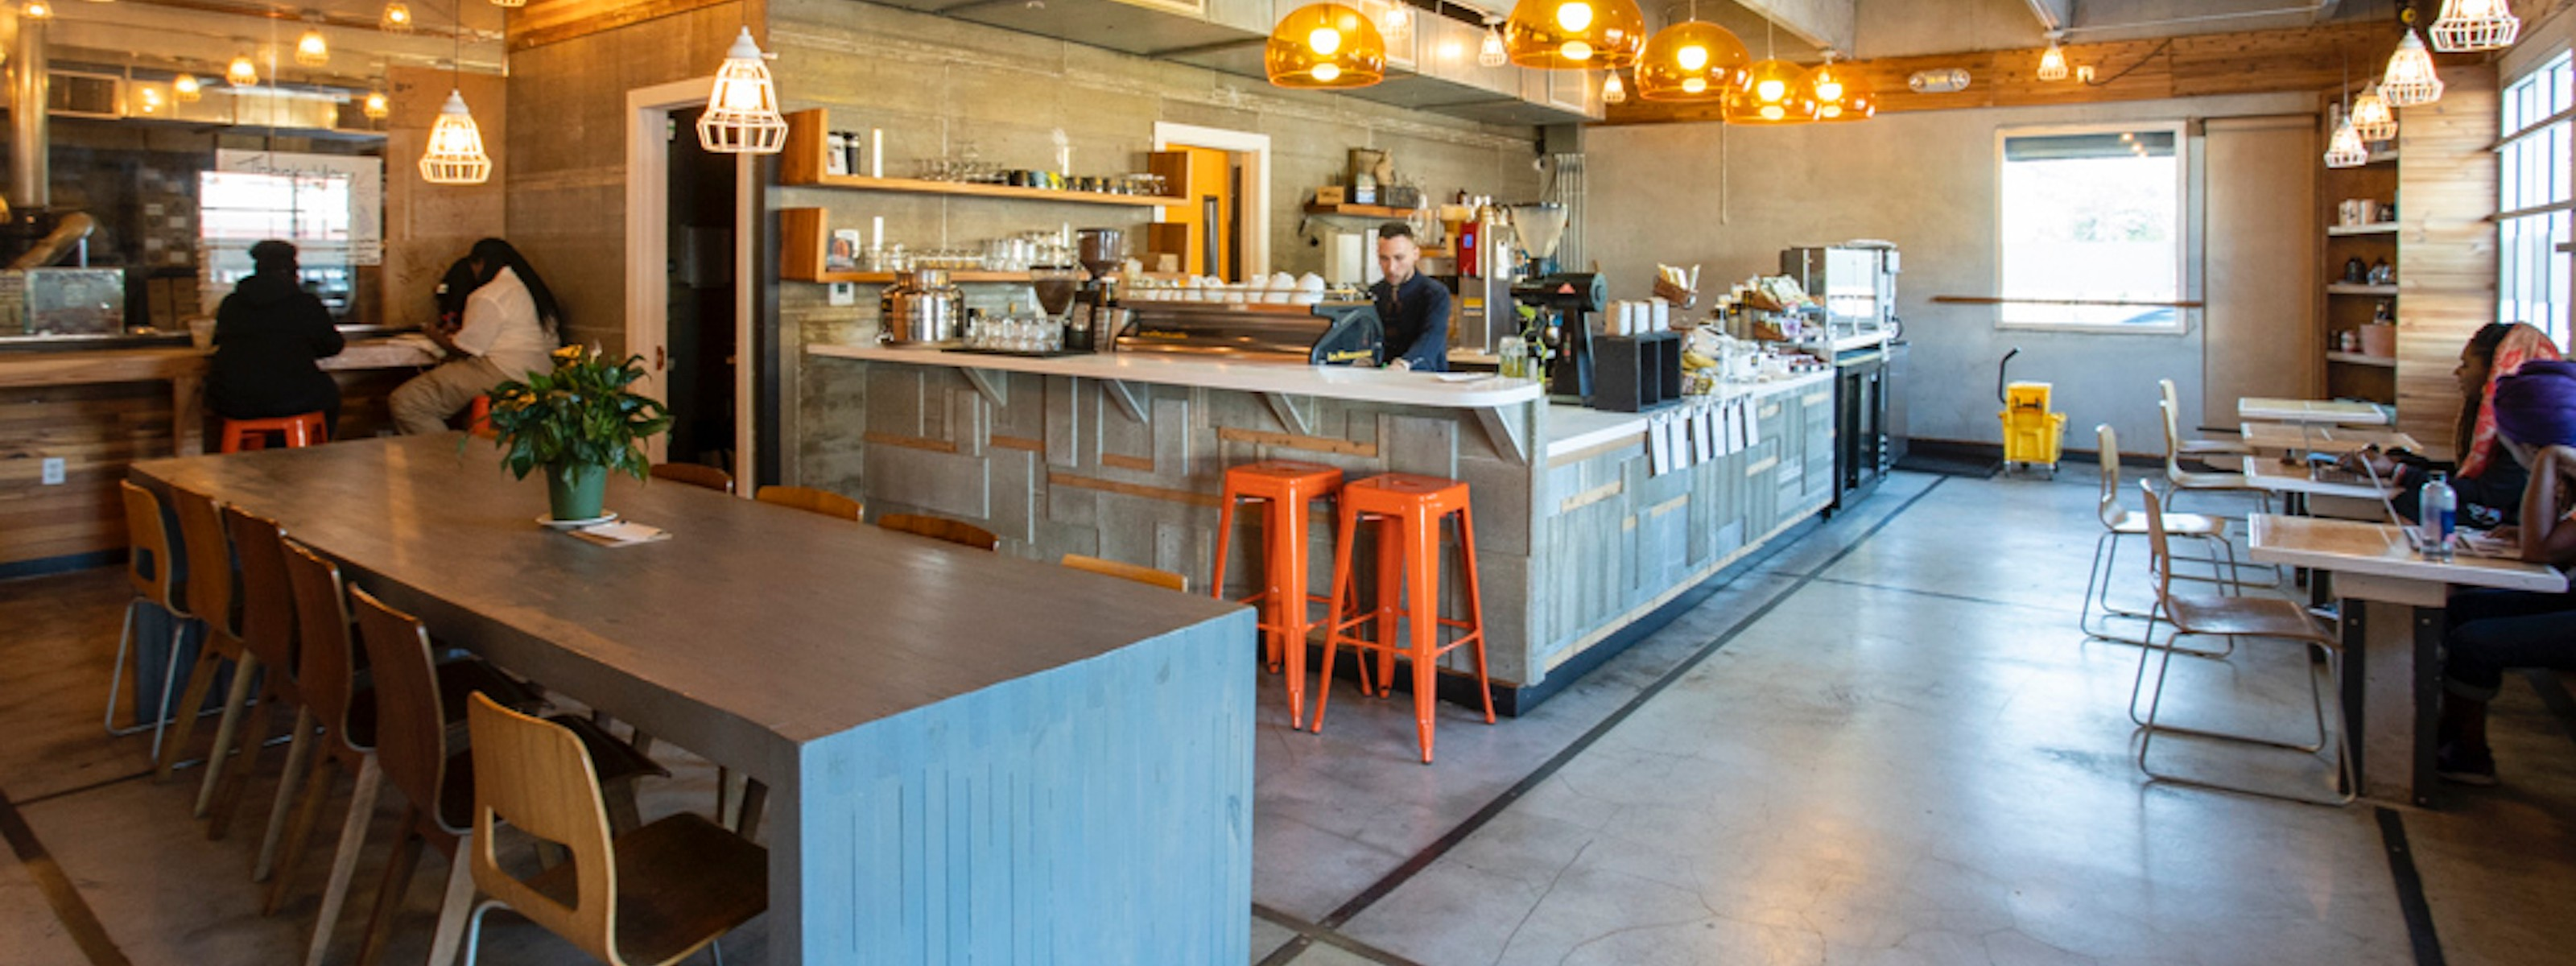 The Best Miami Coffee Shops For Getting Work Done - Miami - The Infatuation